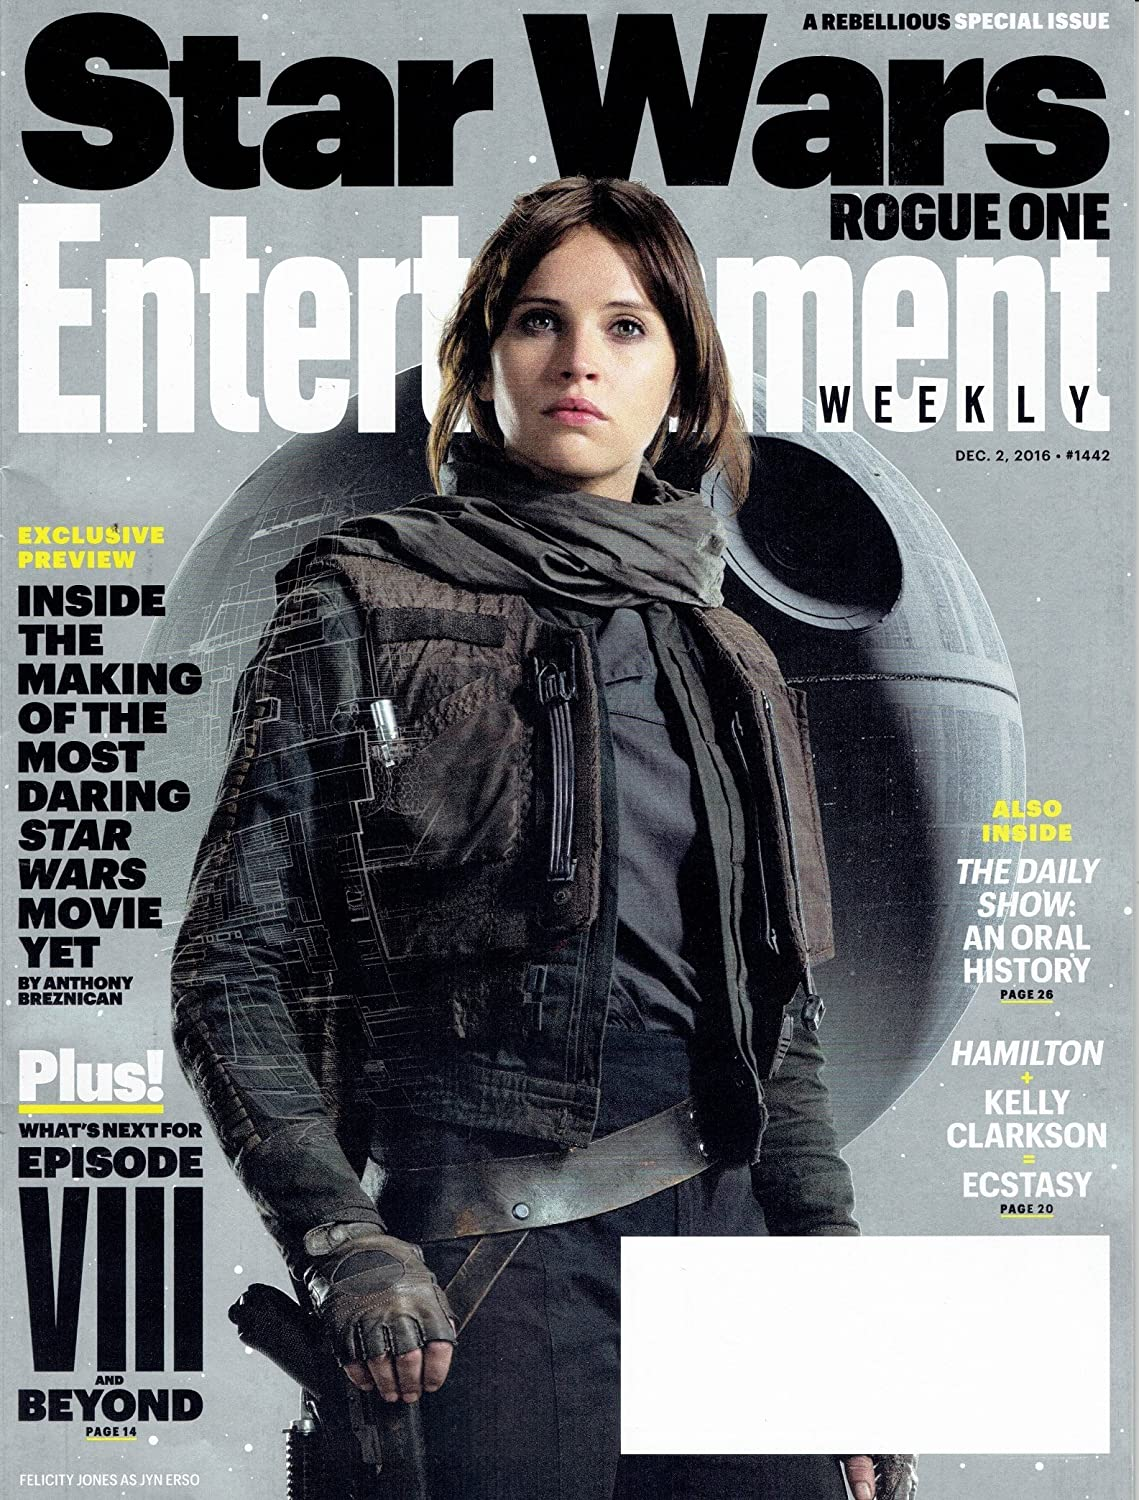 Entertainment Weekly December 2, 2016